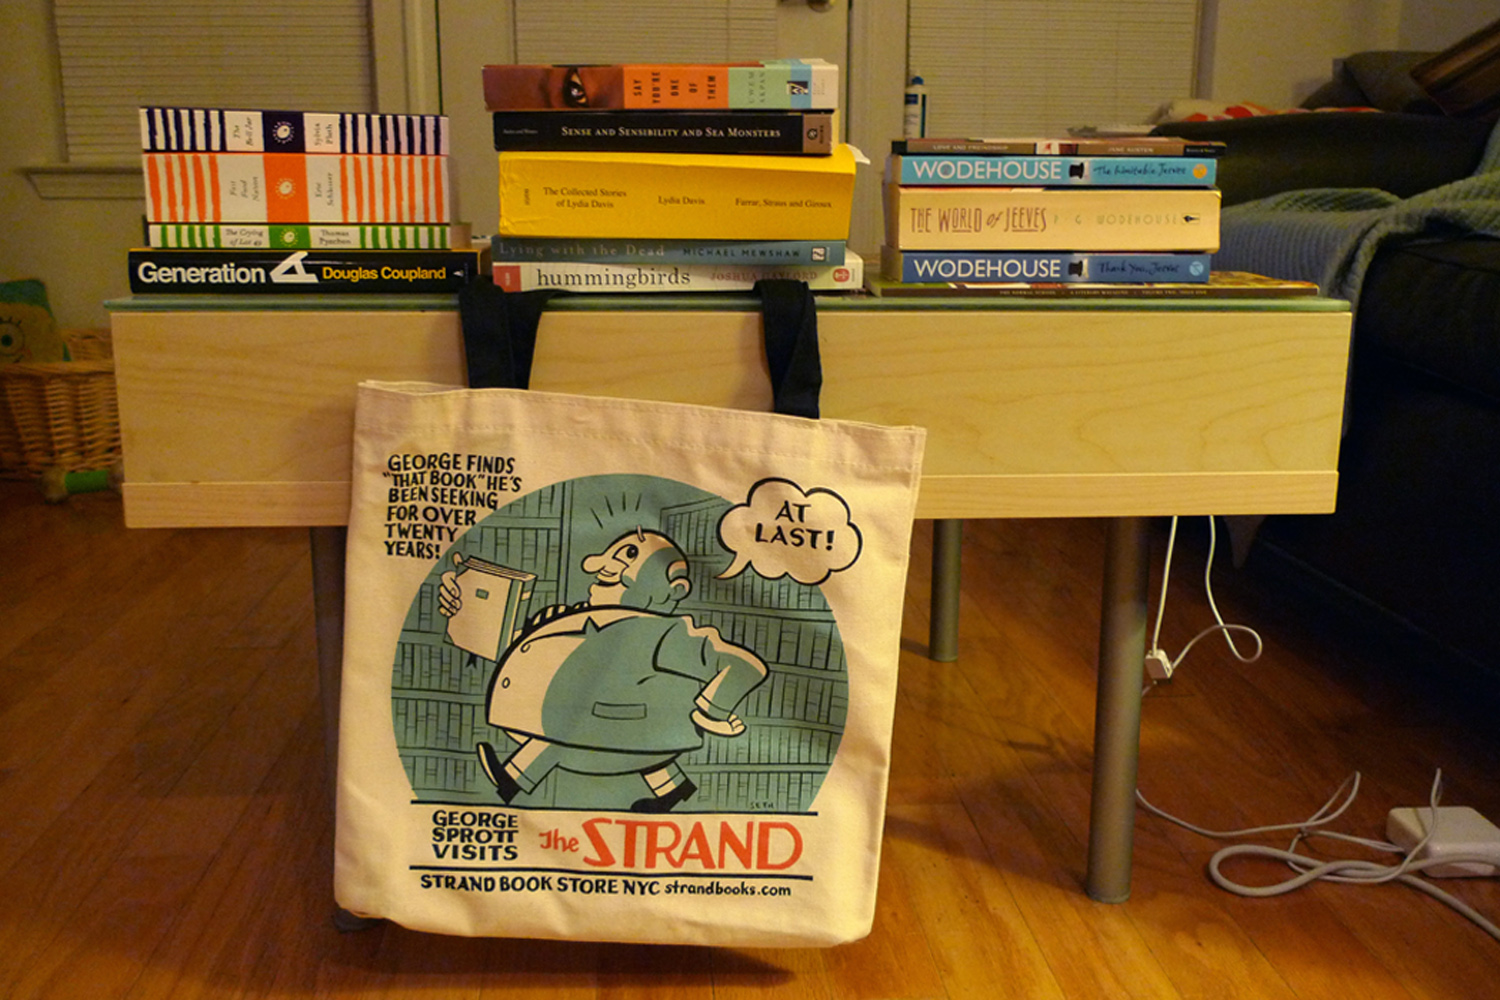 More books... but this time with a fancy new book bag to keep them company!